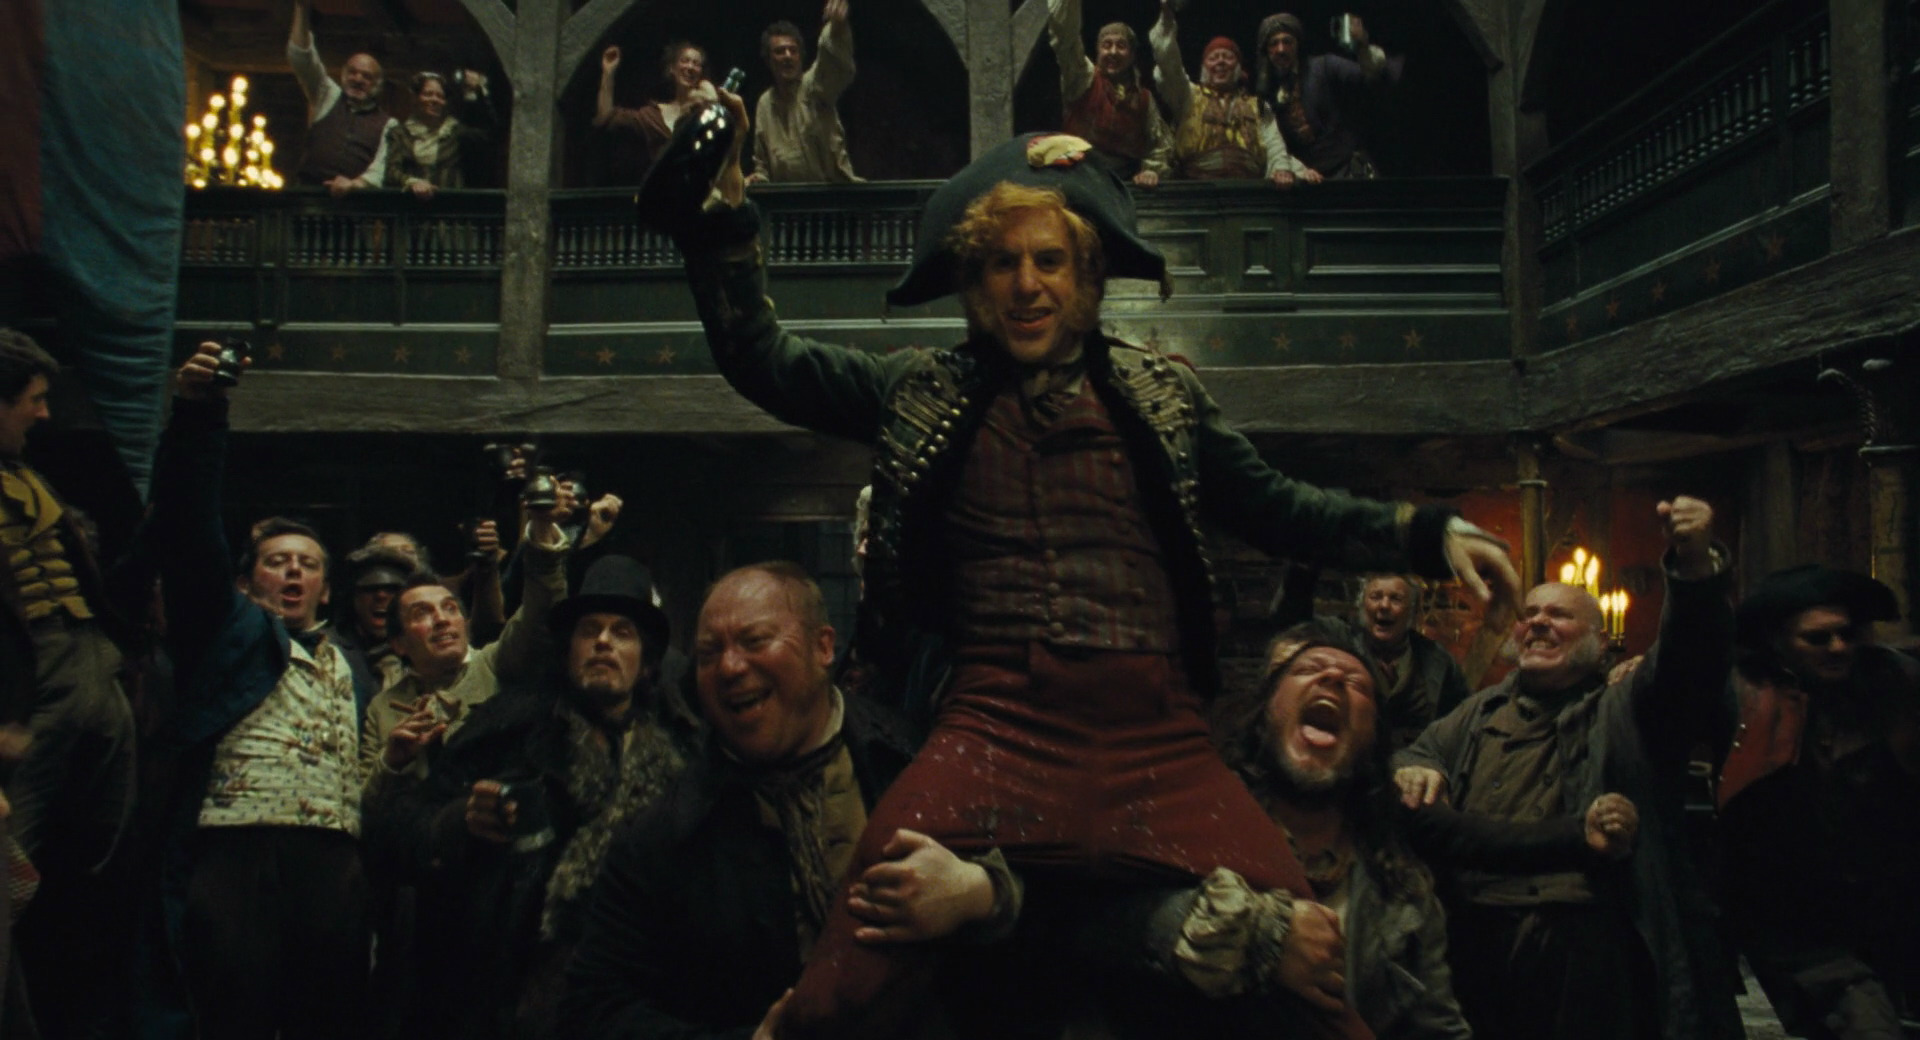 Master of the House | Les Misérables Wiki | FANDOM powered by Wikia